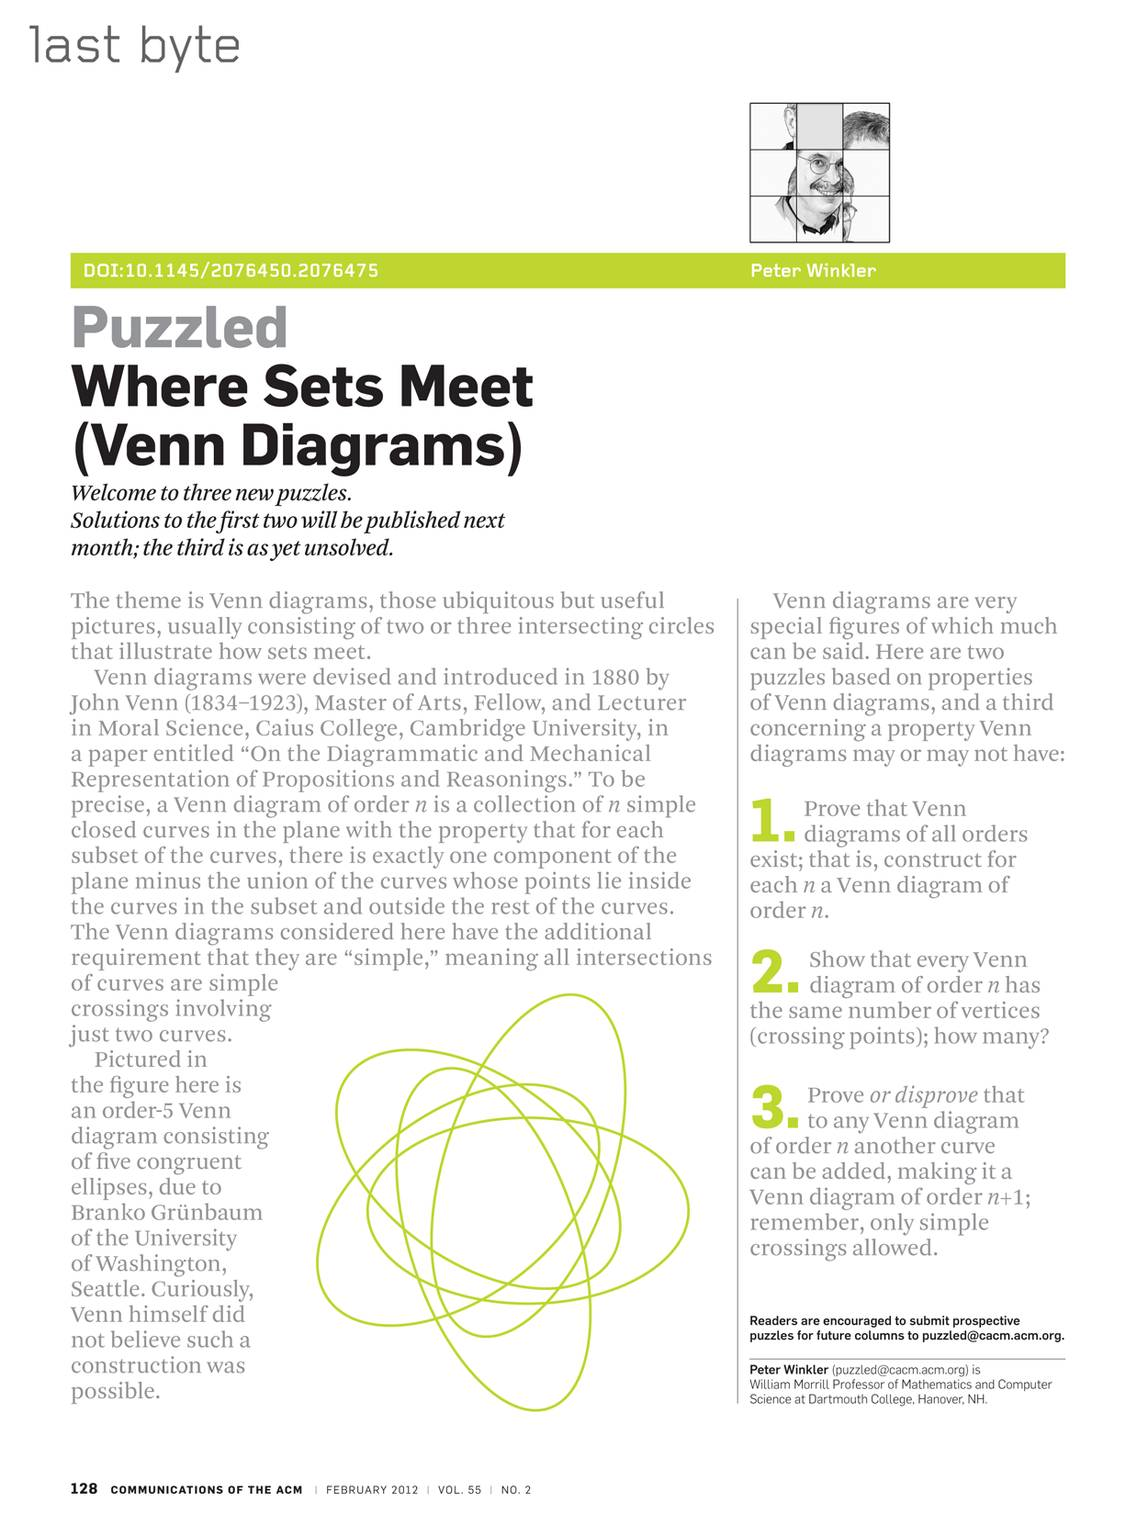 Communications - February 2012 - page 127